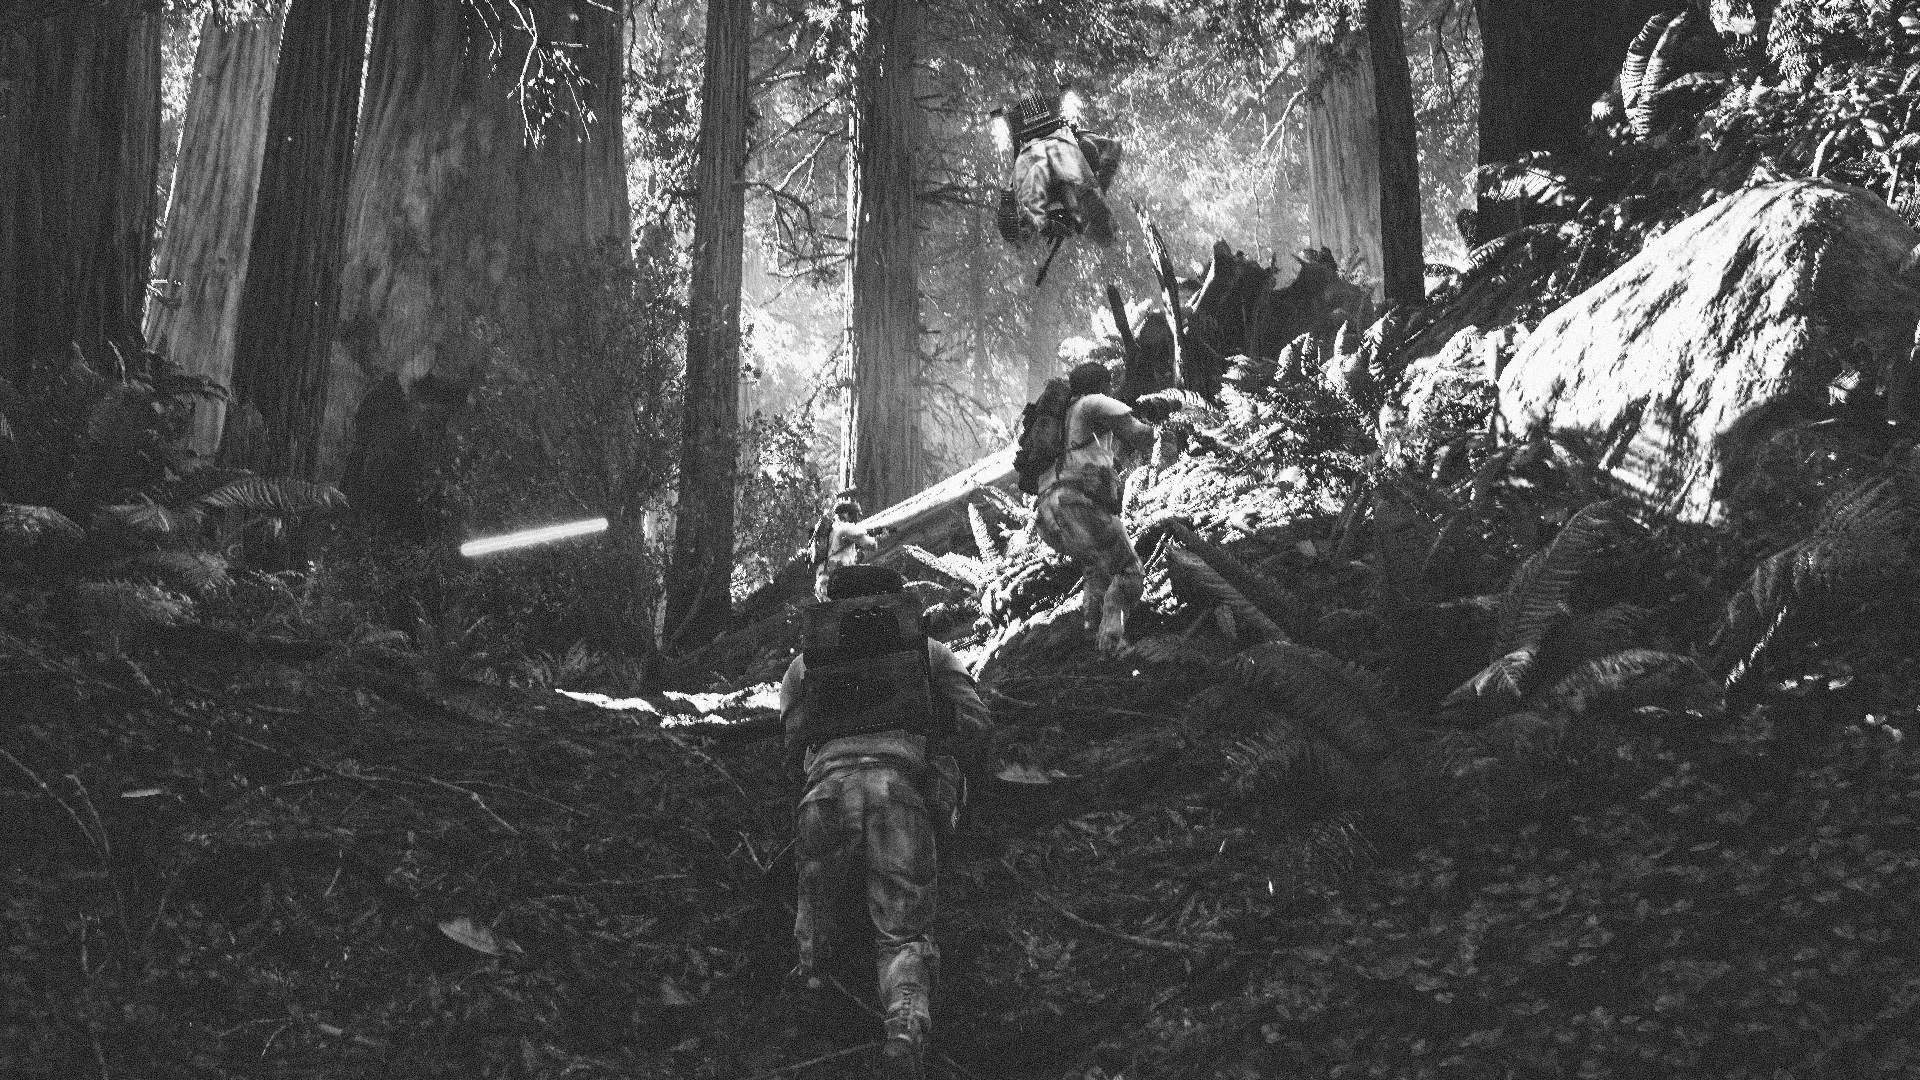 The Imperial forces had launched an attack not far from us.